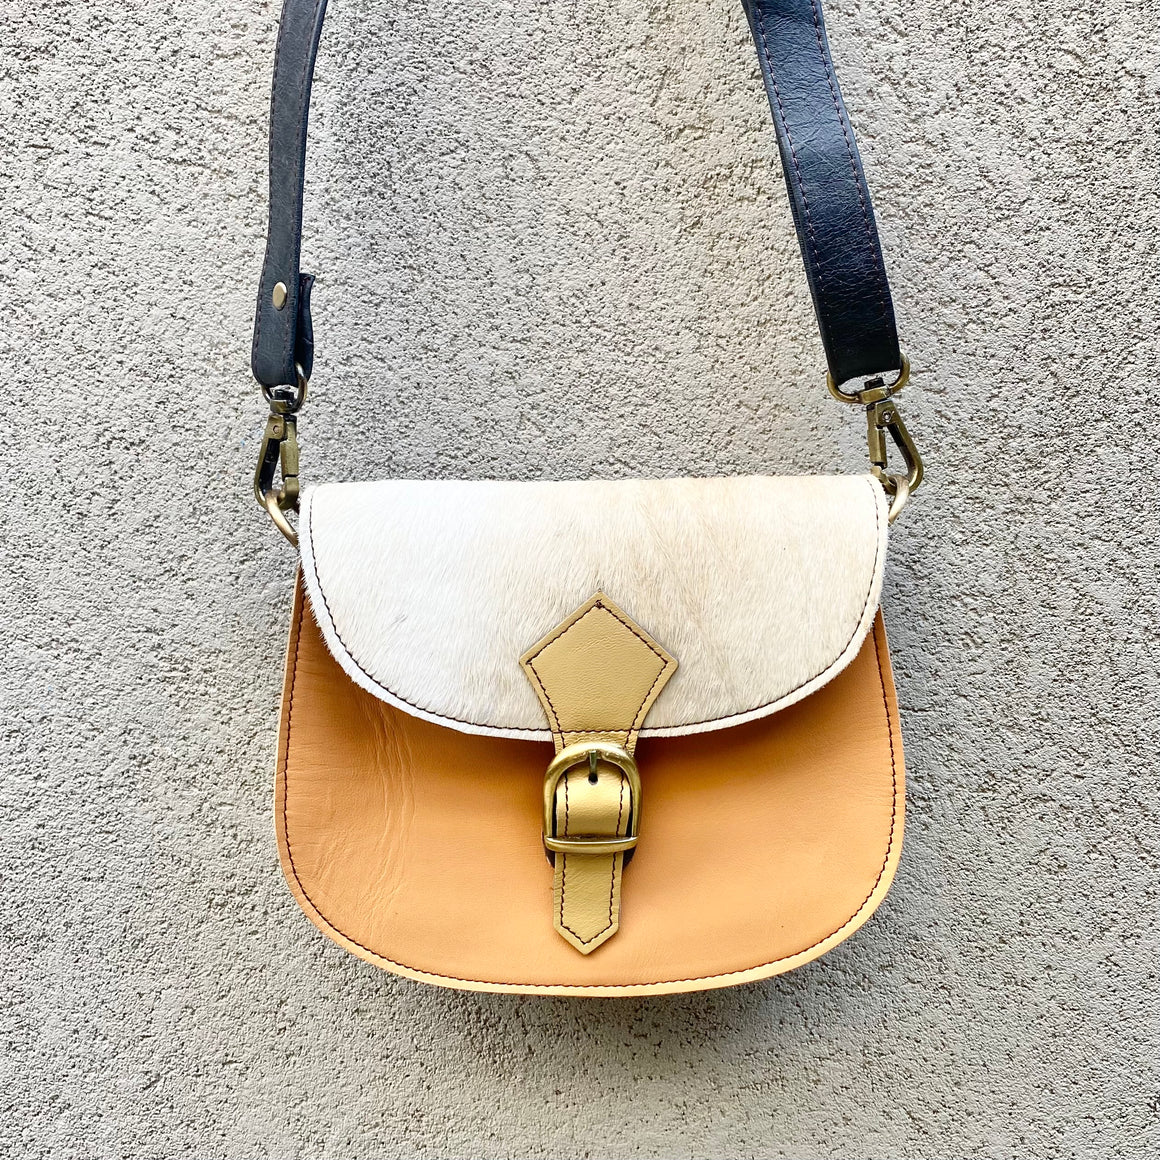 Jupiter Cowhide and Leather Crossbody Clutch Bag - White, Peach, Slate Grey, Clutch Bag - KITTY KAT,